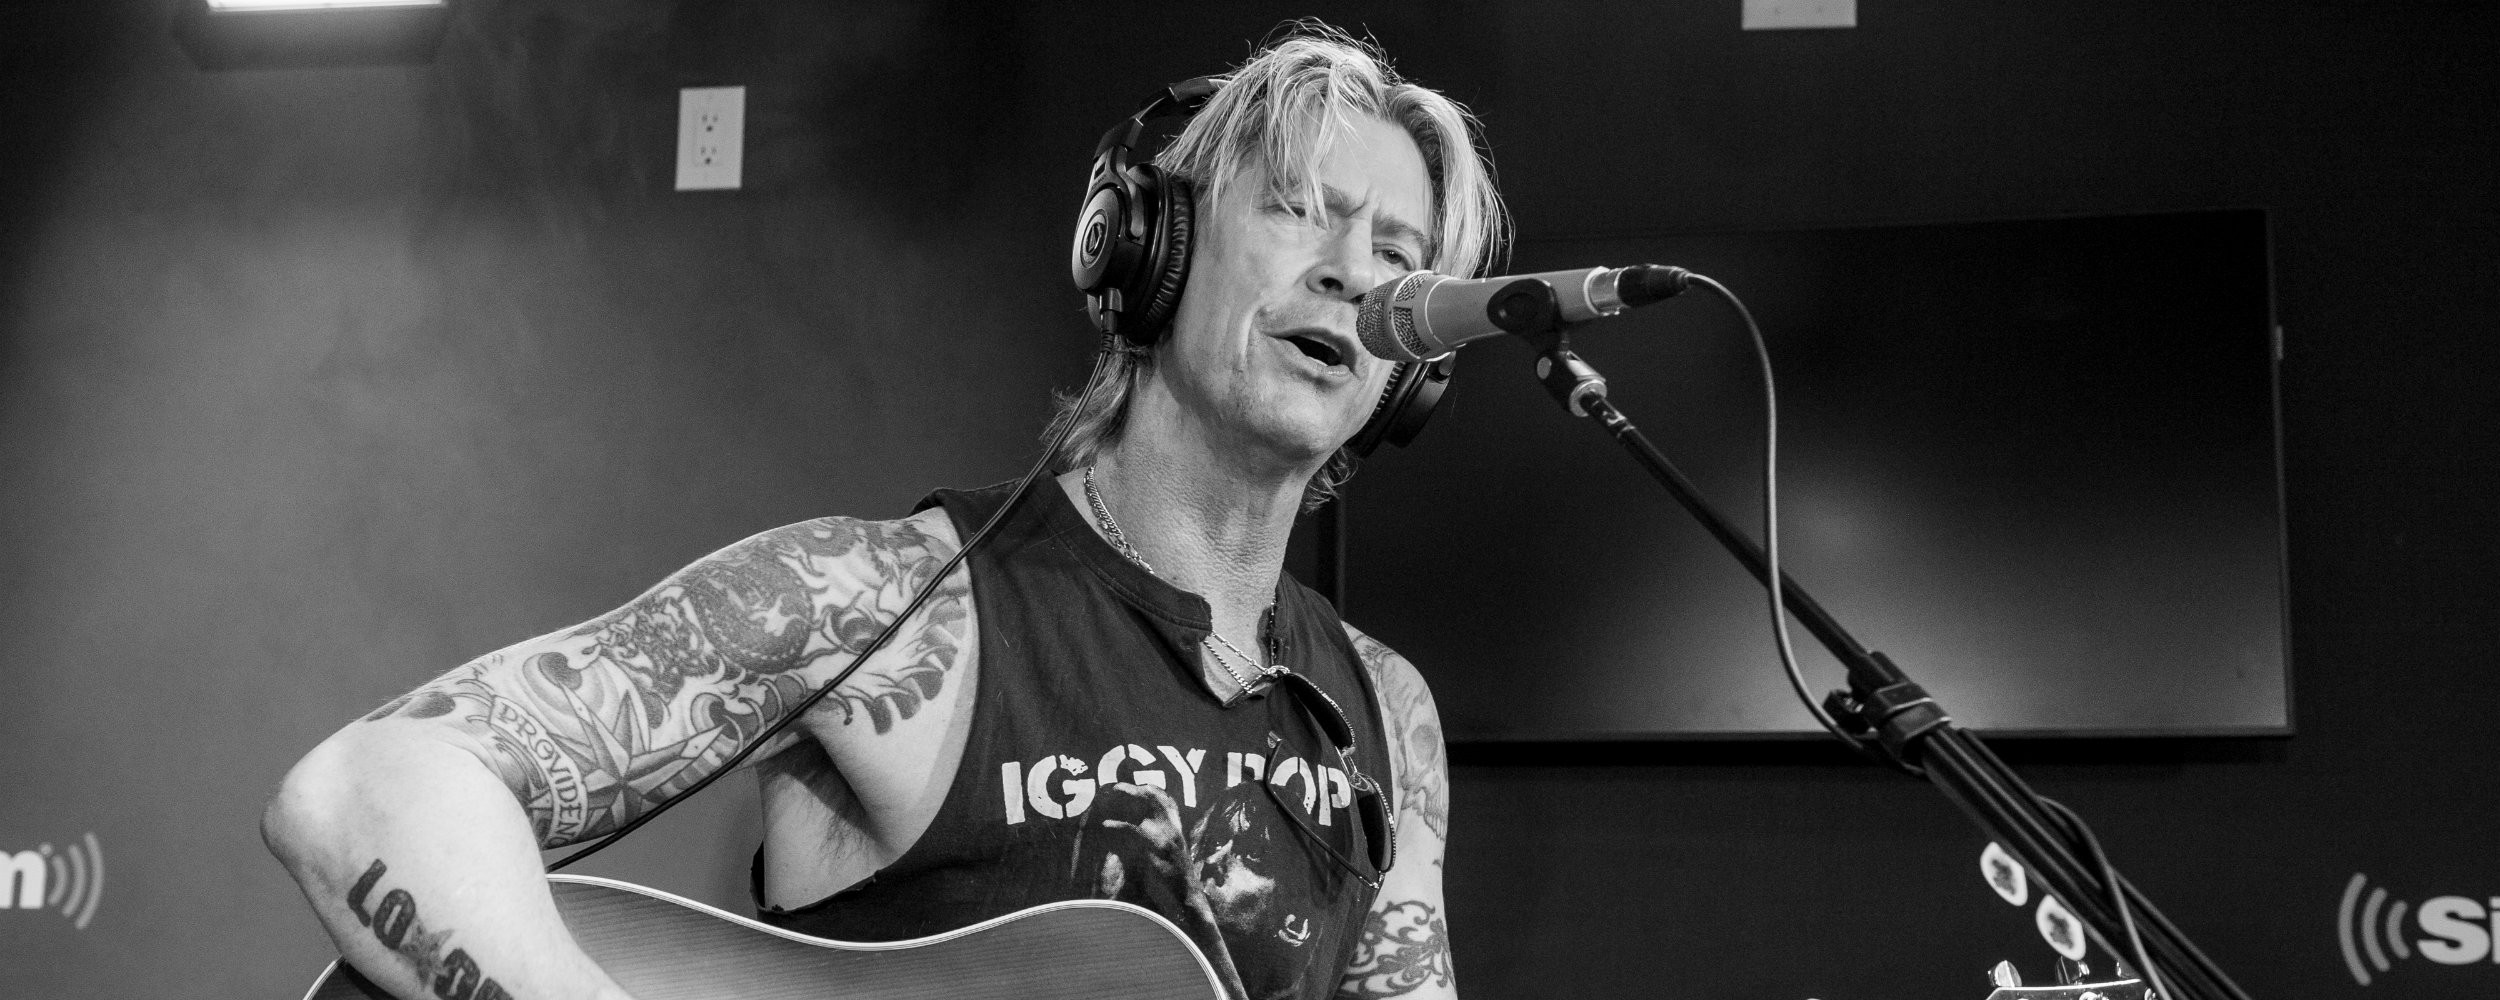 """Duff McKagan Talks New Album <i>Tenderness</i> and Why Social Media and Cable News Are """"Poisonous"""""""